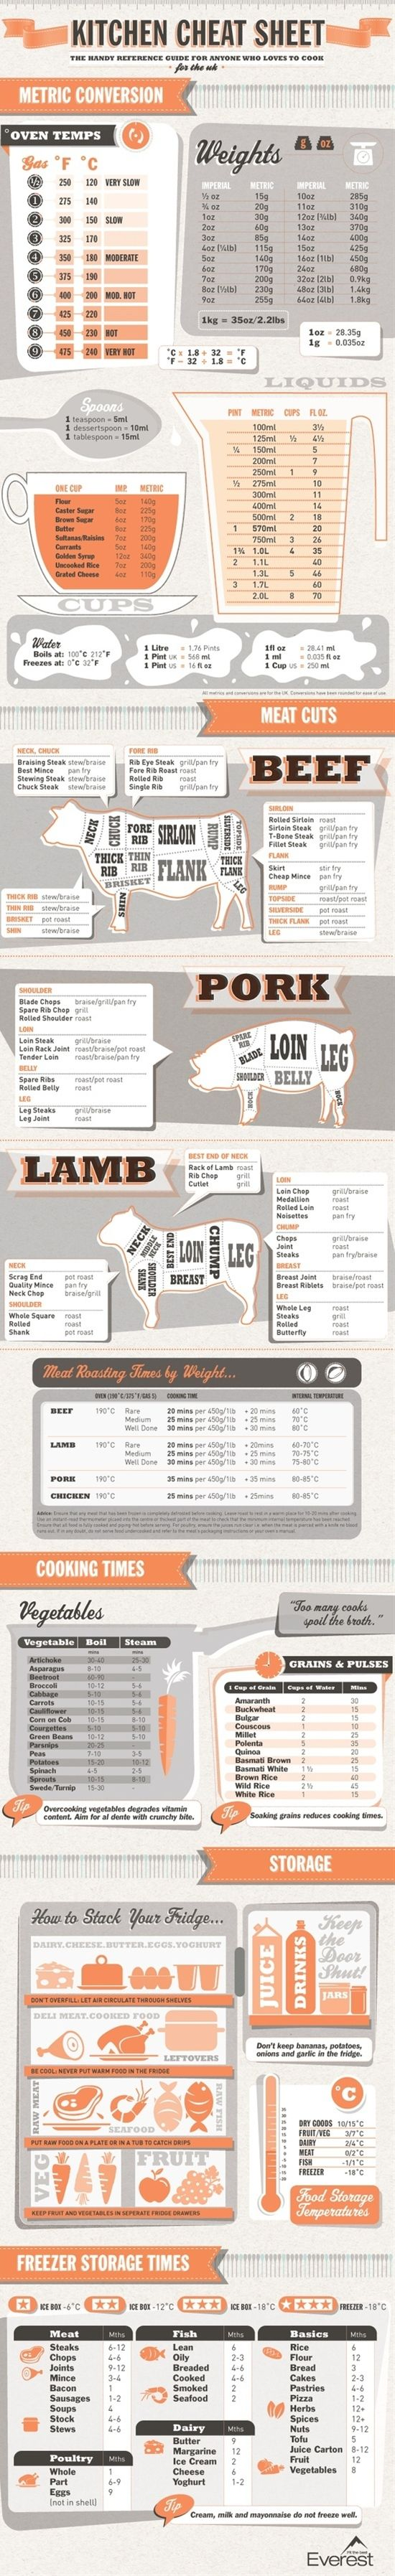 Kitchen Cheat Sheet - printing and keeping it in my kitchen!. - Click image to find more diy & crafts Pinterest pins